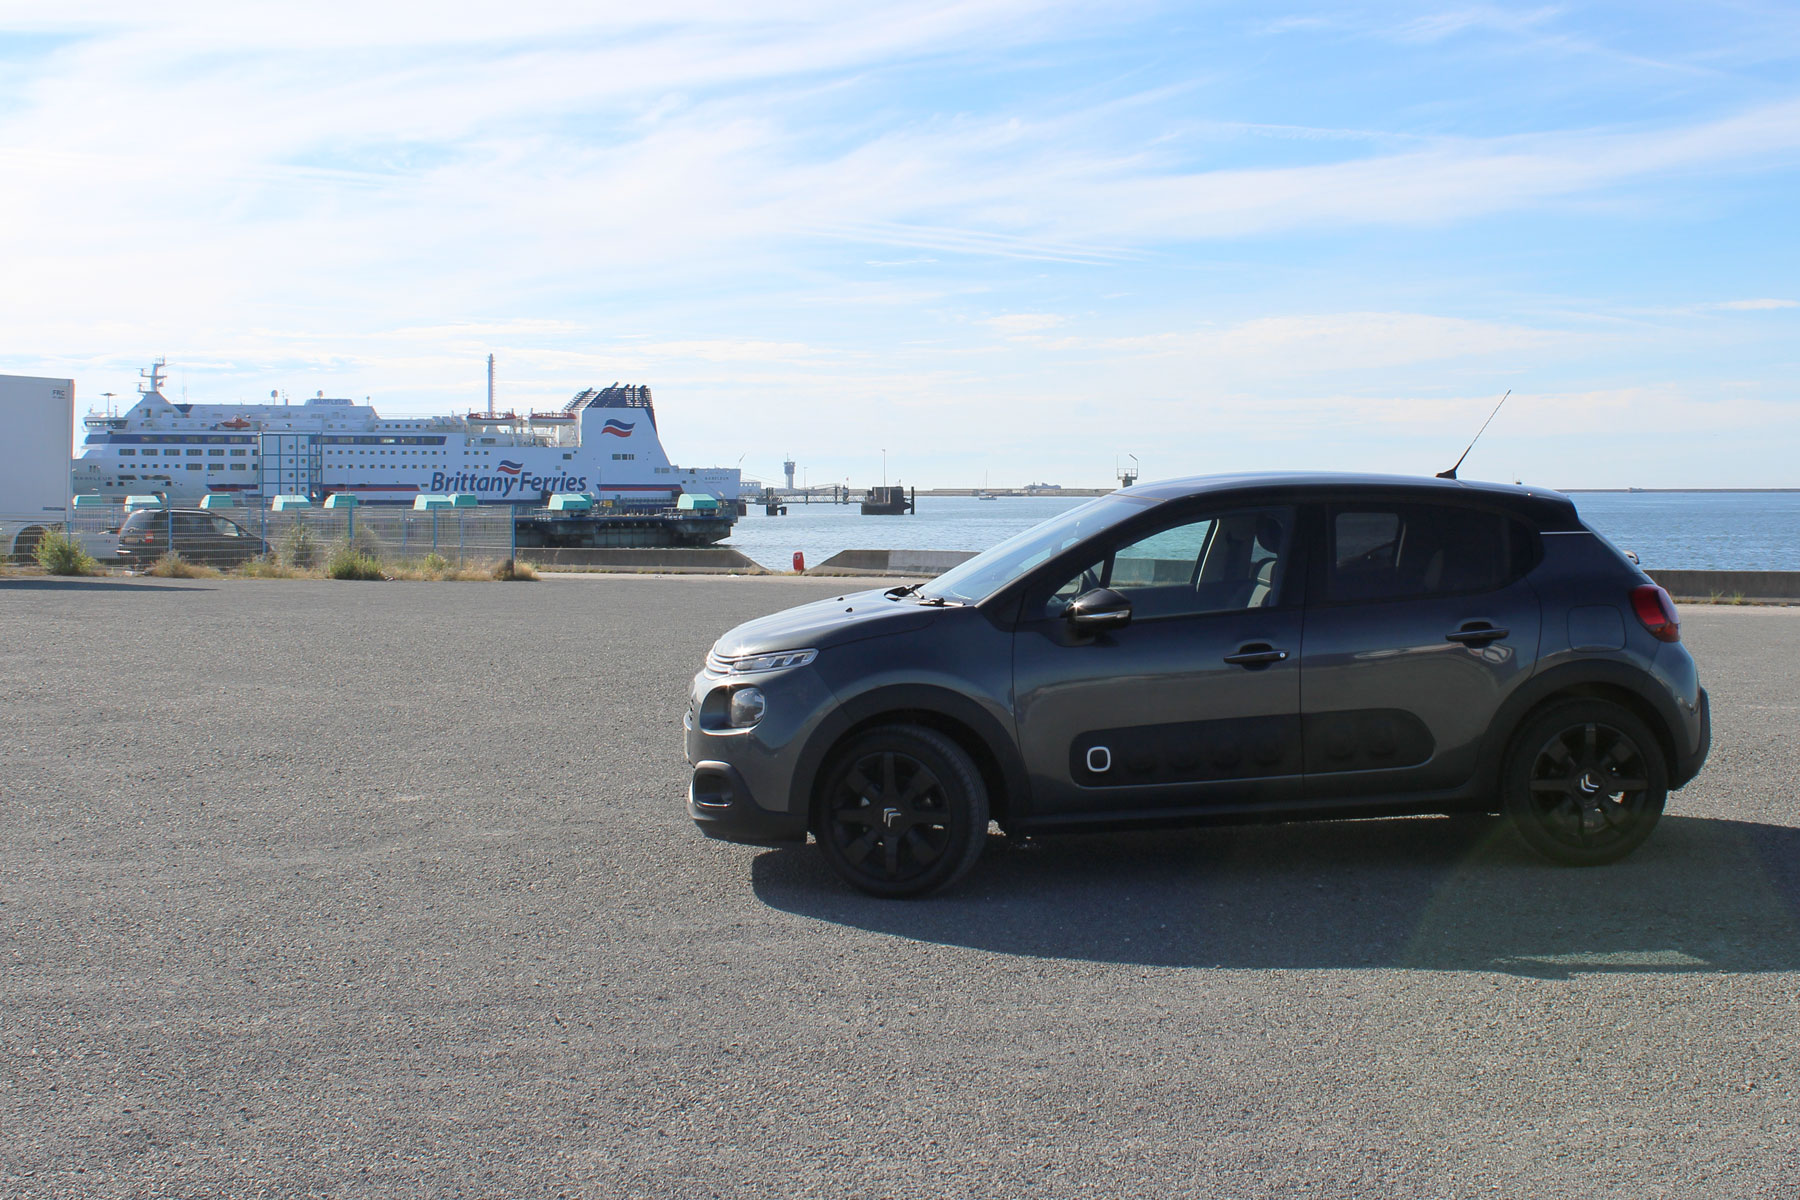 Citroen C3 Brittany Ferries